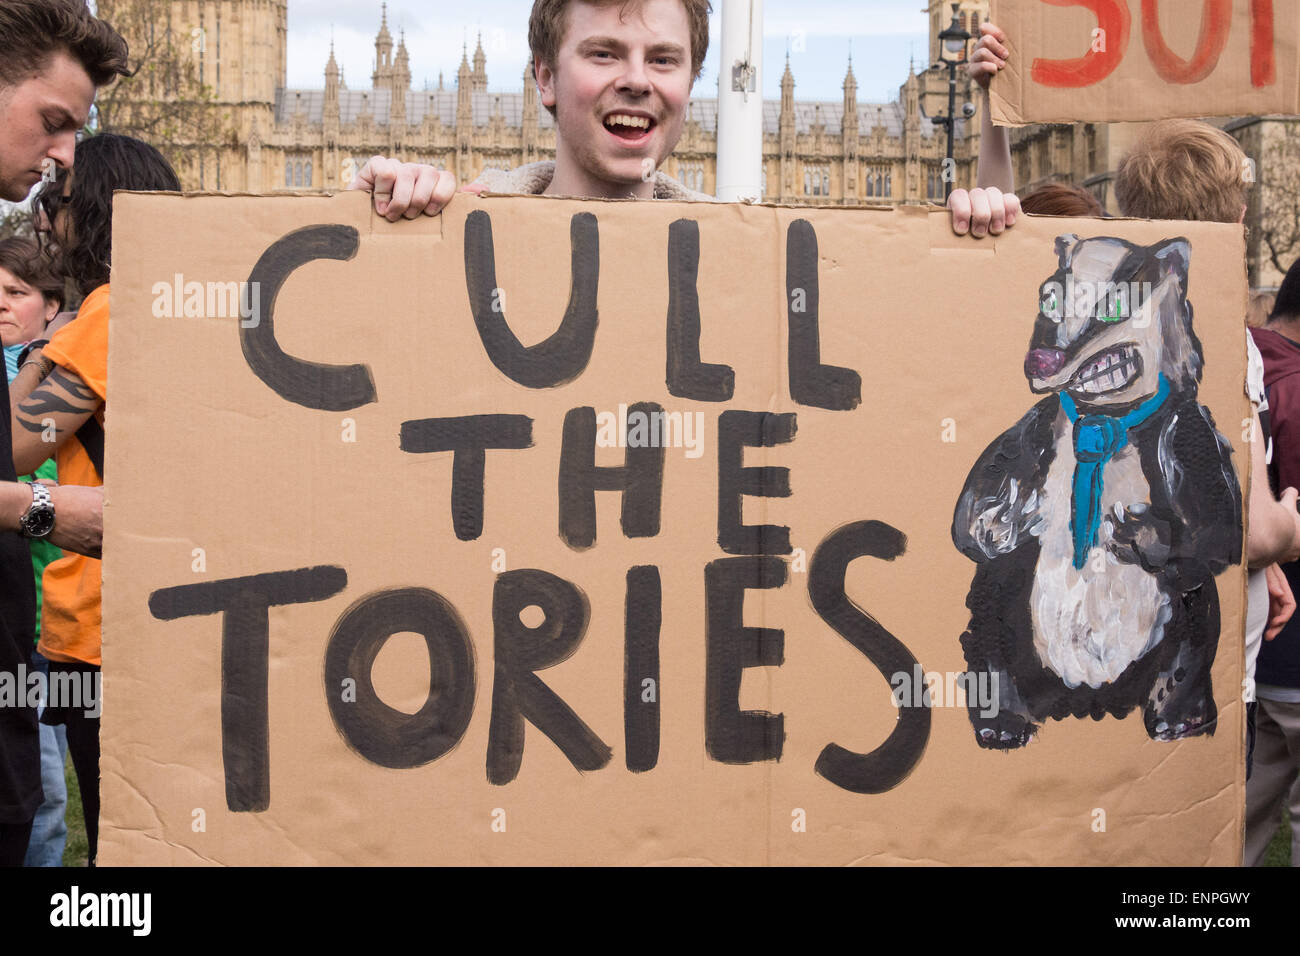 London, 9th May 2015. A protester holds a humourous placard during a demonstration in central London in protest - Stock Image